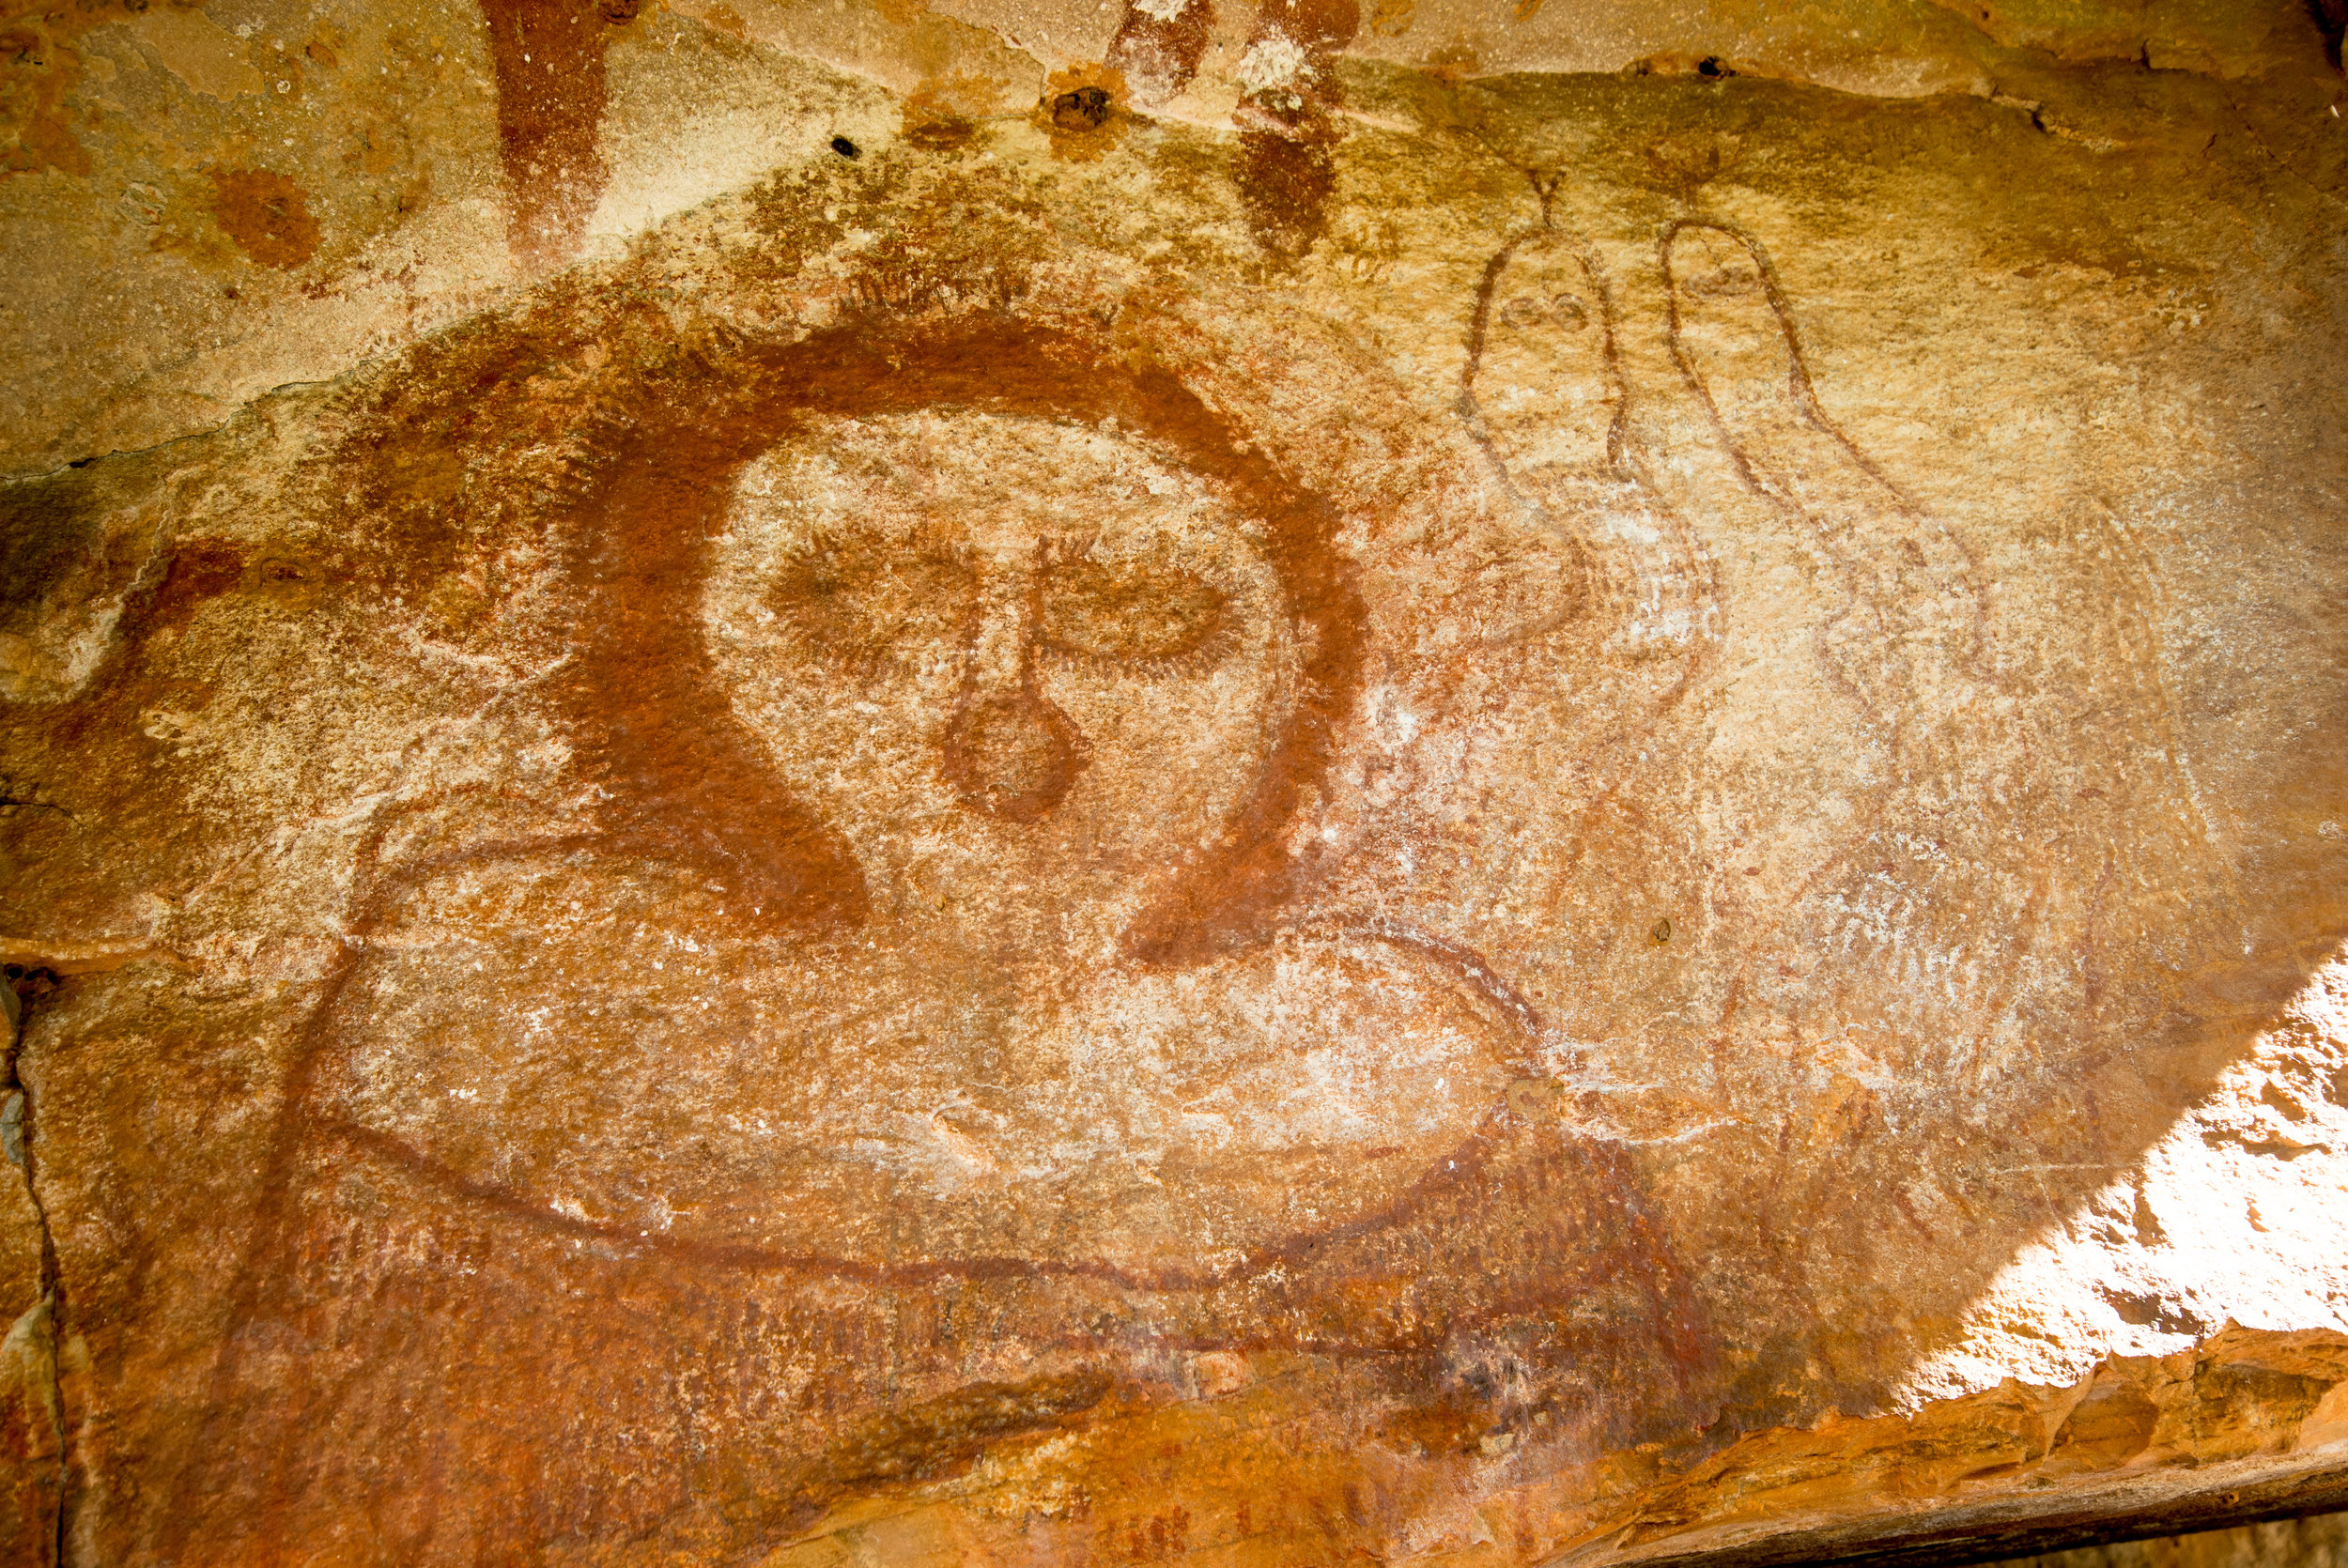 Wandjina rock art. pic.jpg